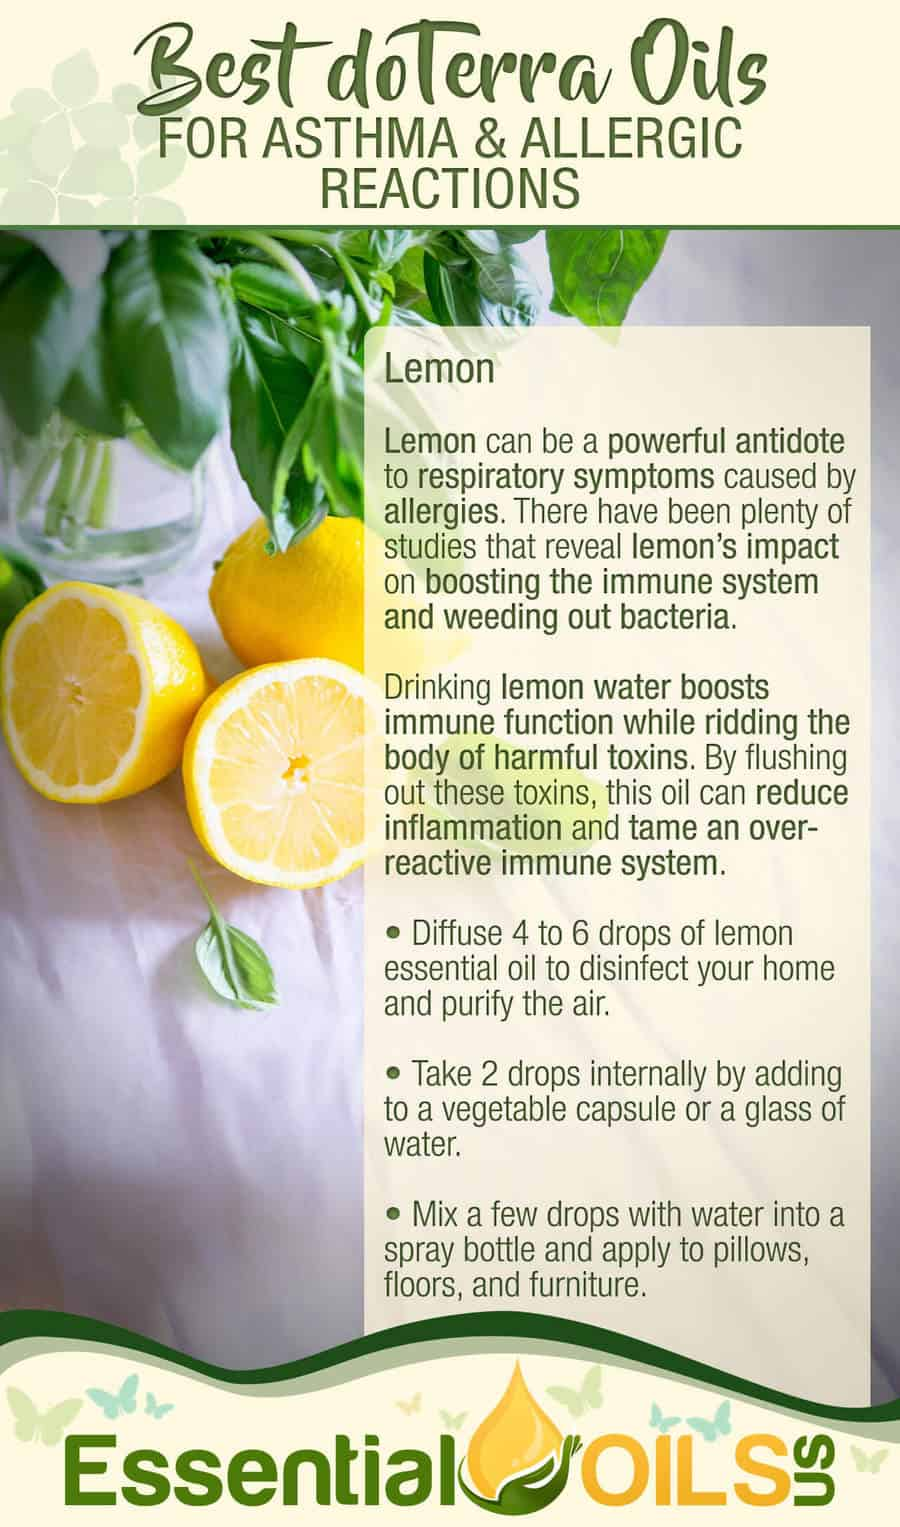 doTerra Essential Oils For Asthma And Allergy - Lemon